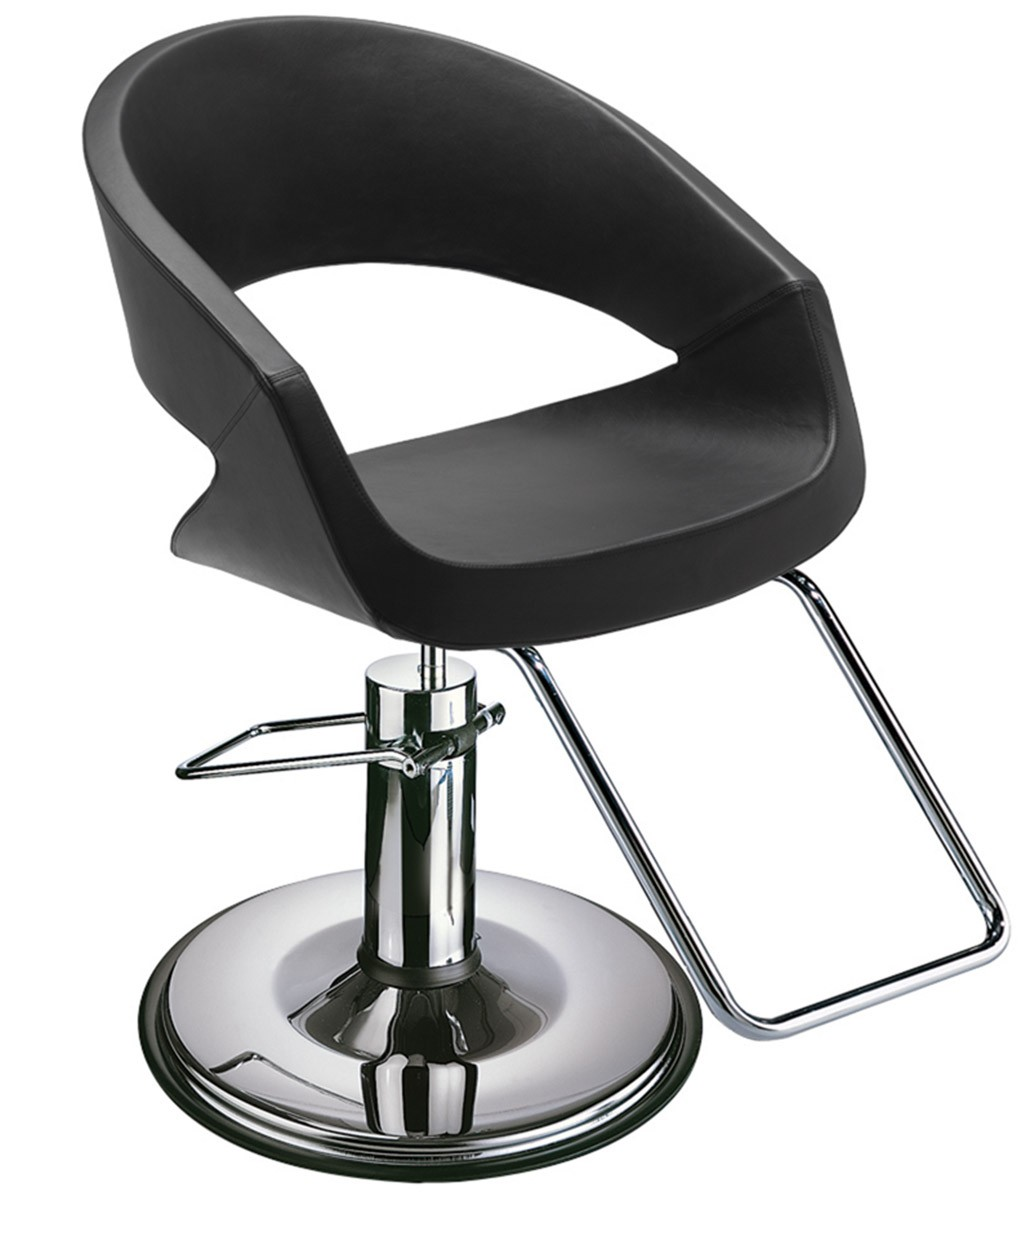 belmont salon chair childrens folding table and set takara st m80 caruso styling